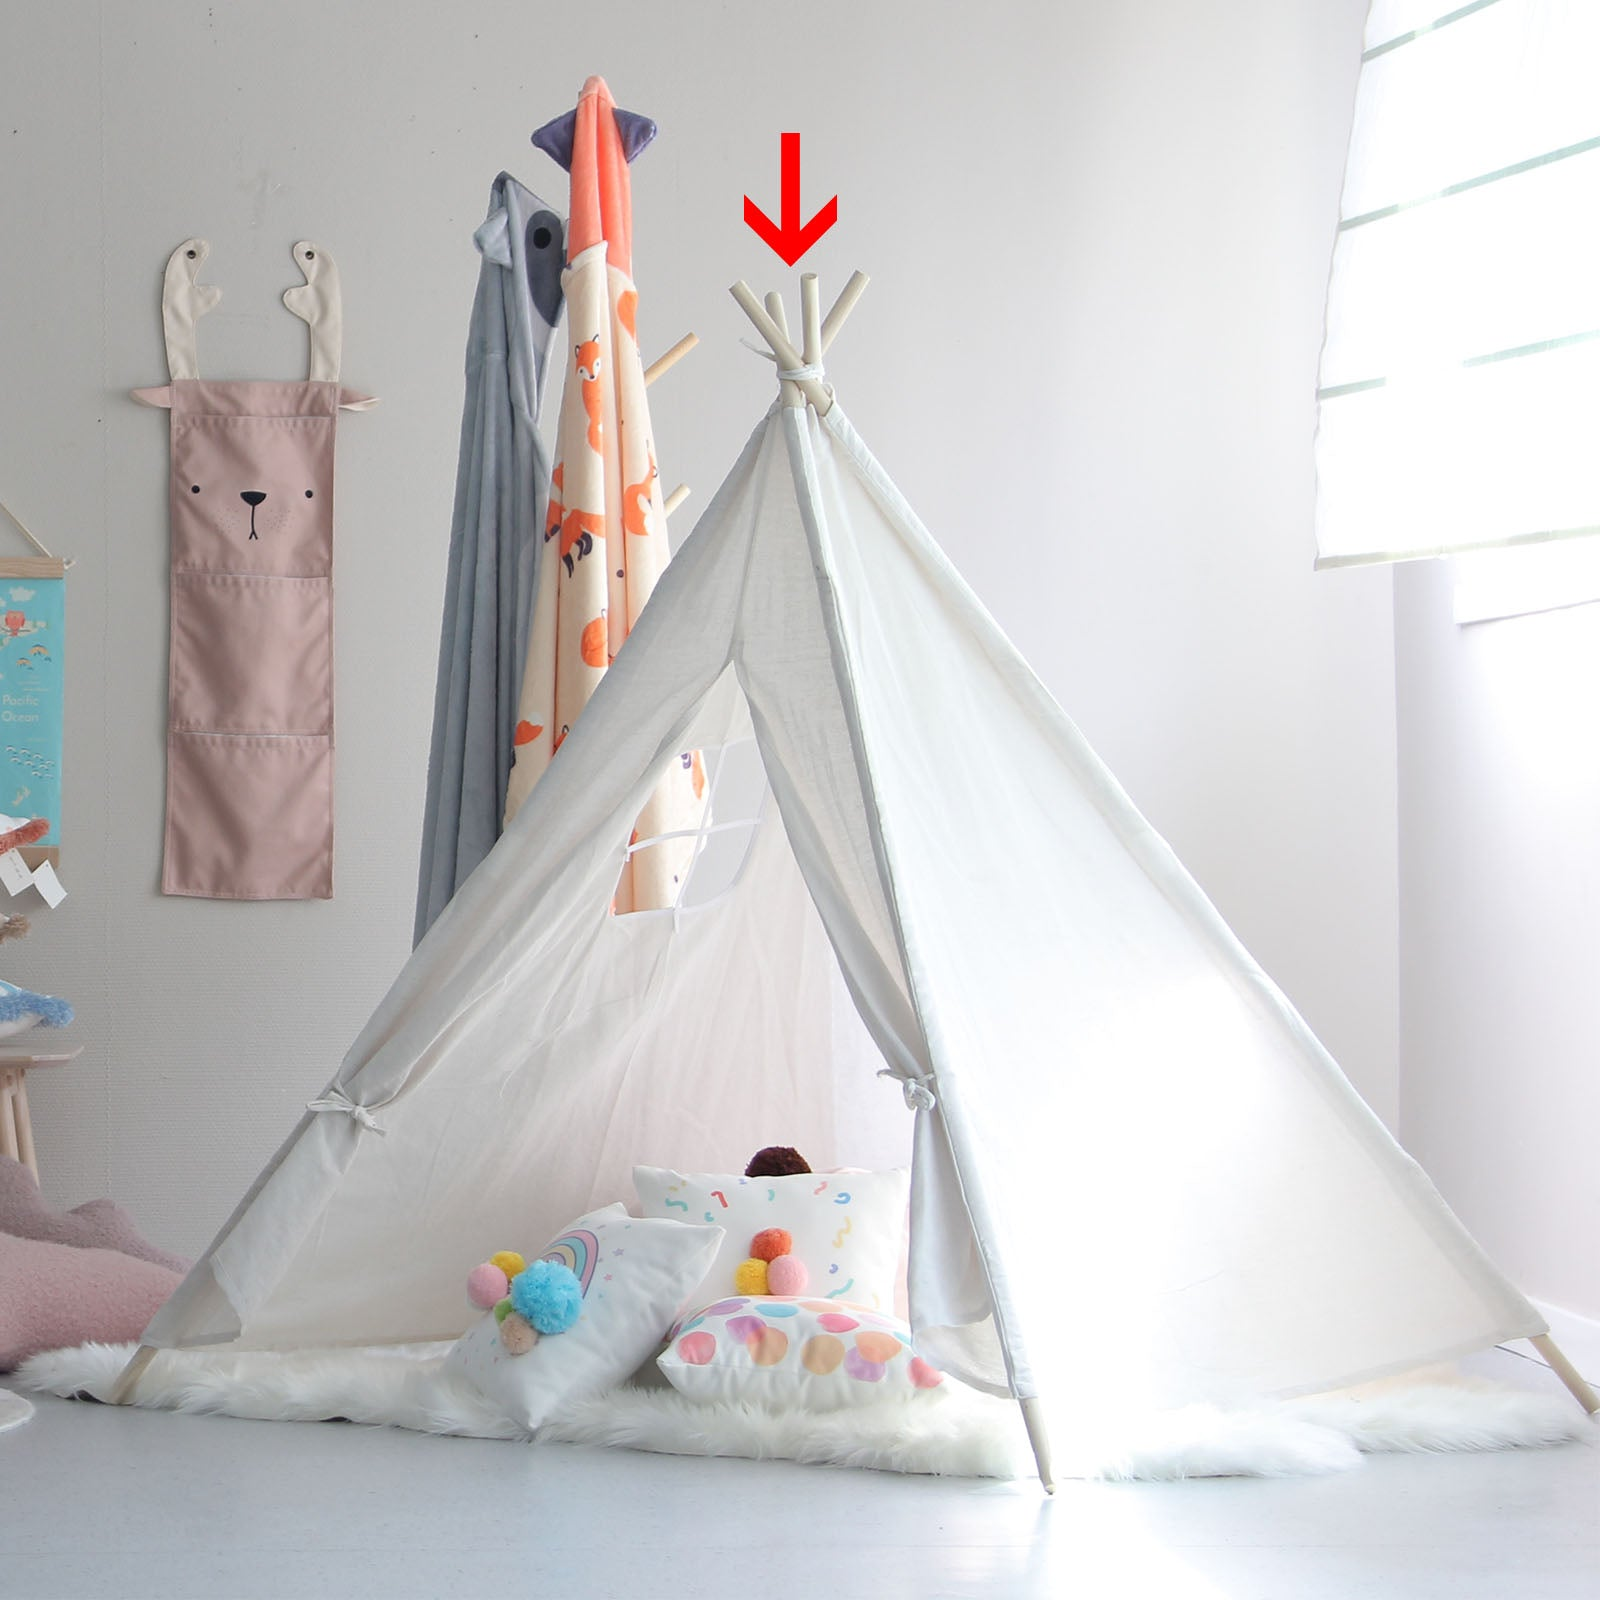 Kids Tent   190410-007 -  خيمة الاطفال - Shop Online Furniture and Home Decor Store in Dubai, UAE at ebarza